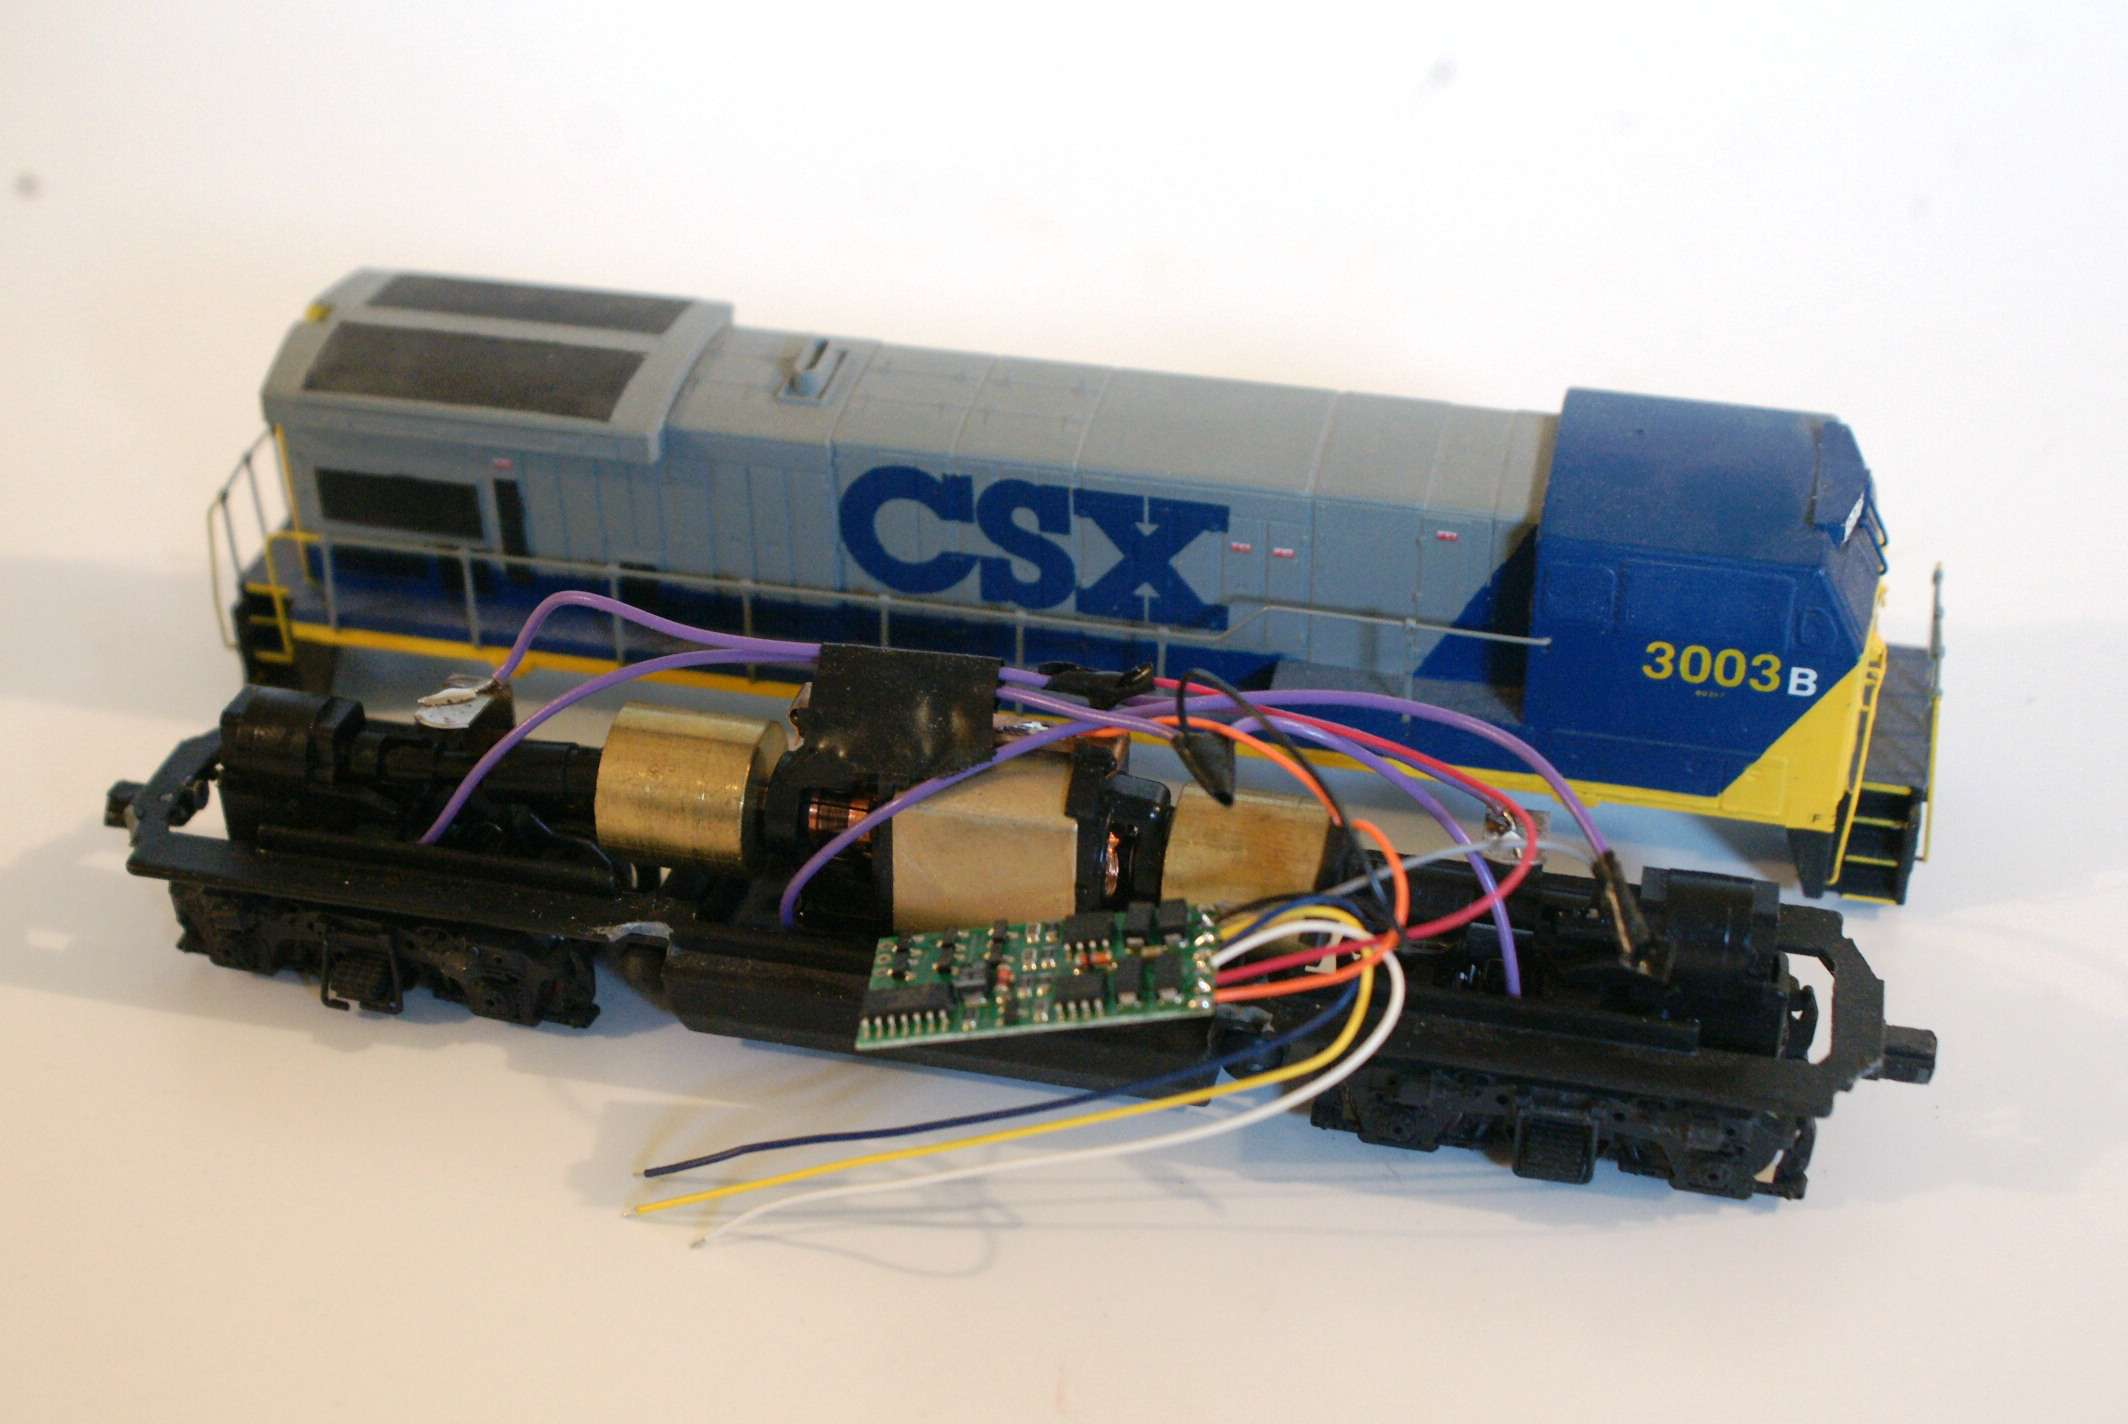 This NCE decoder is installed on an Athearn HO locomotive frame and motor.